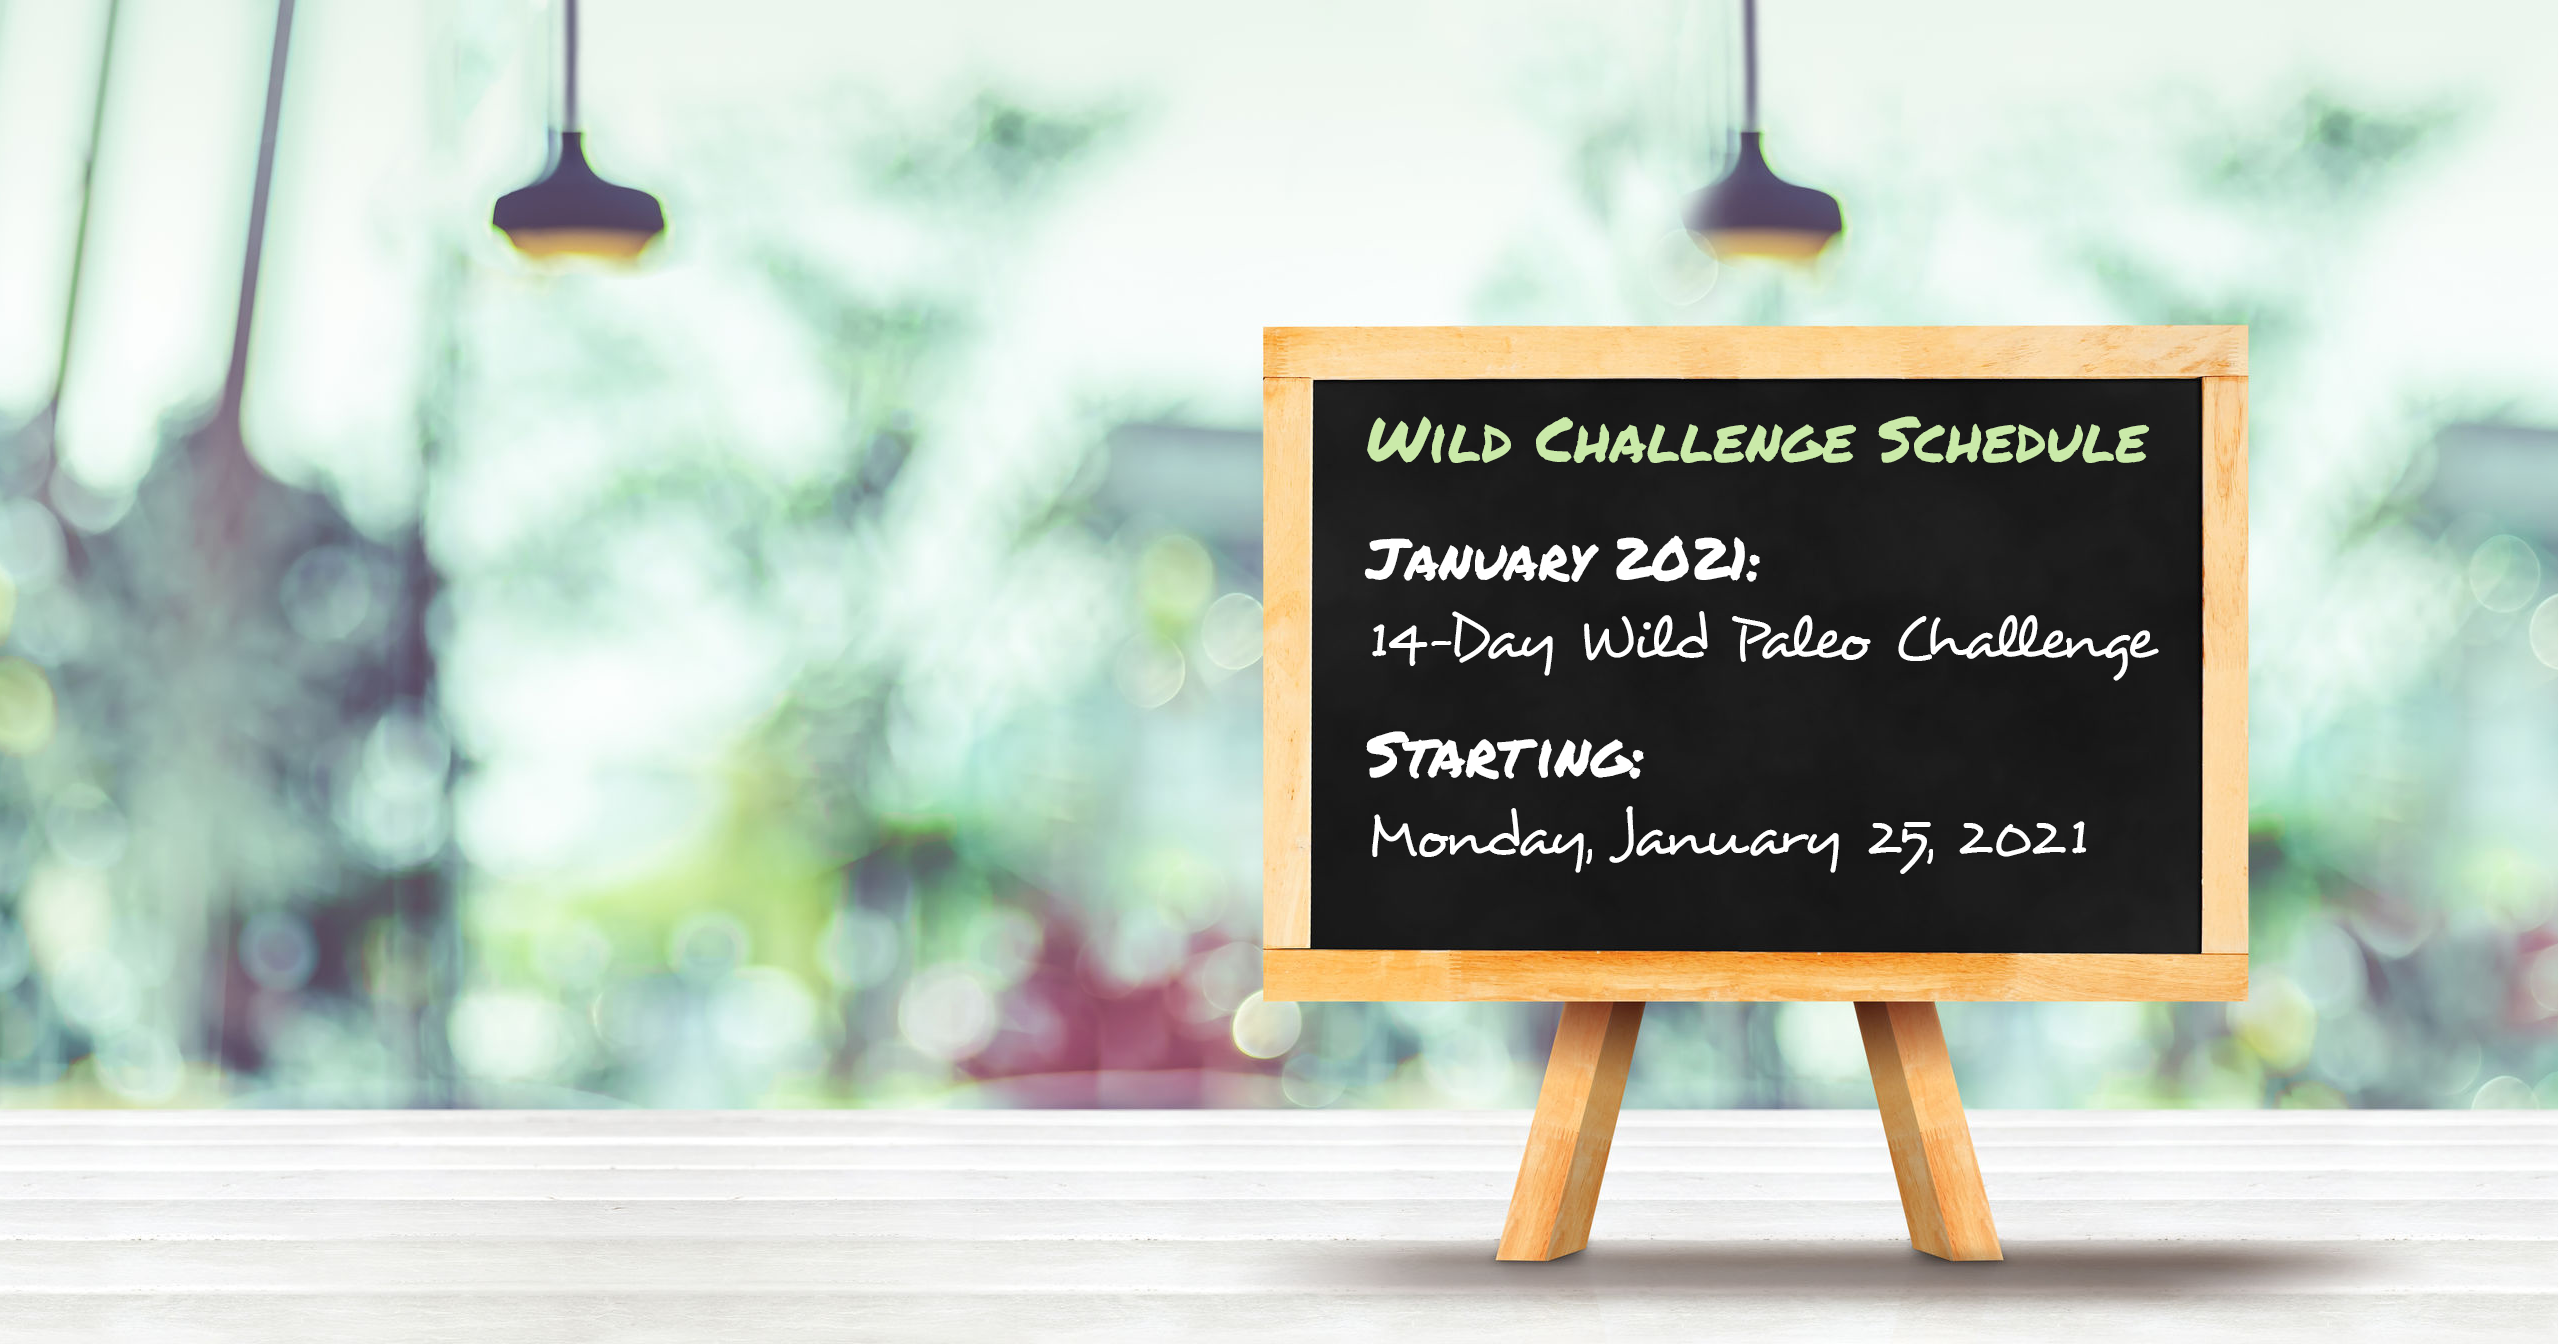 Ready To Join The Next Wild Challenge with Abel James? Let's get you started.